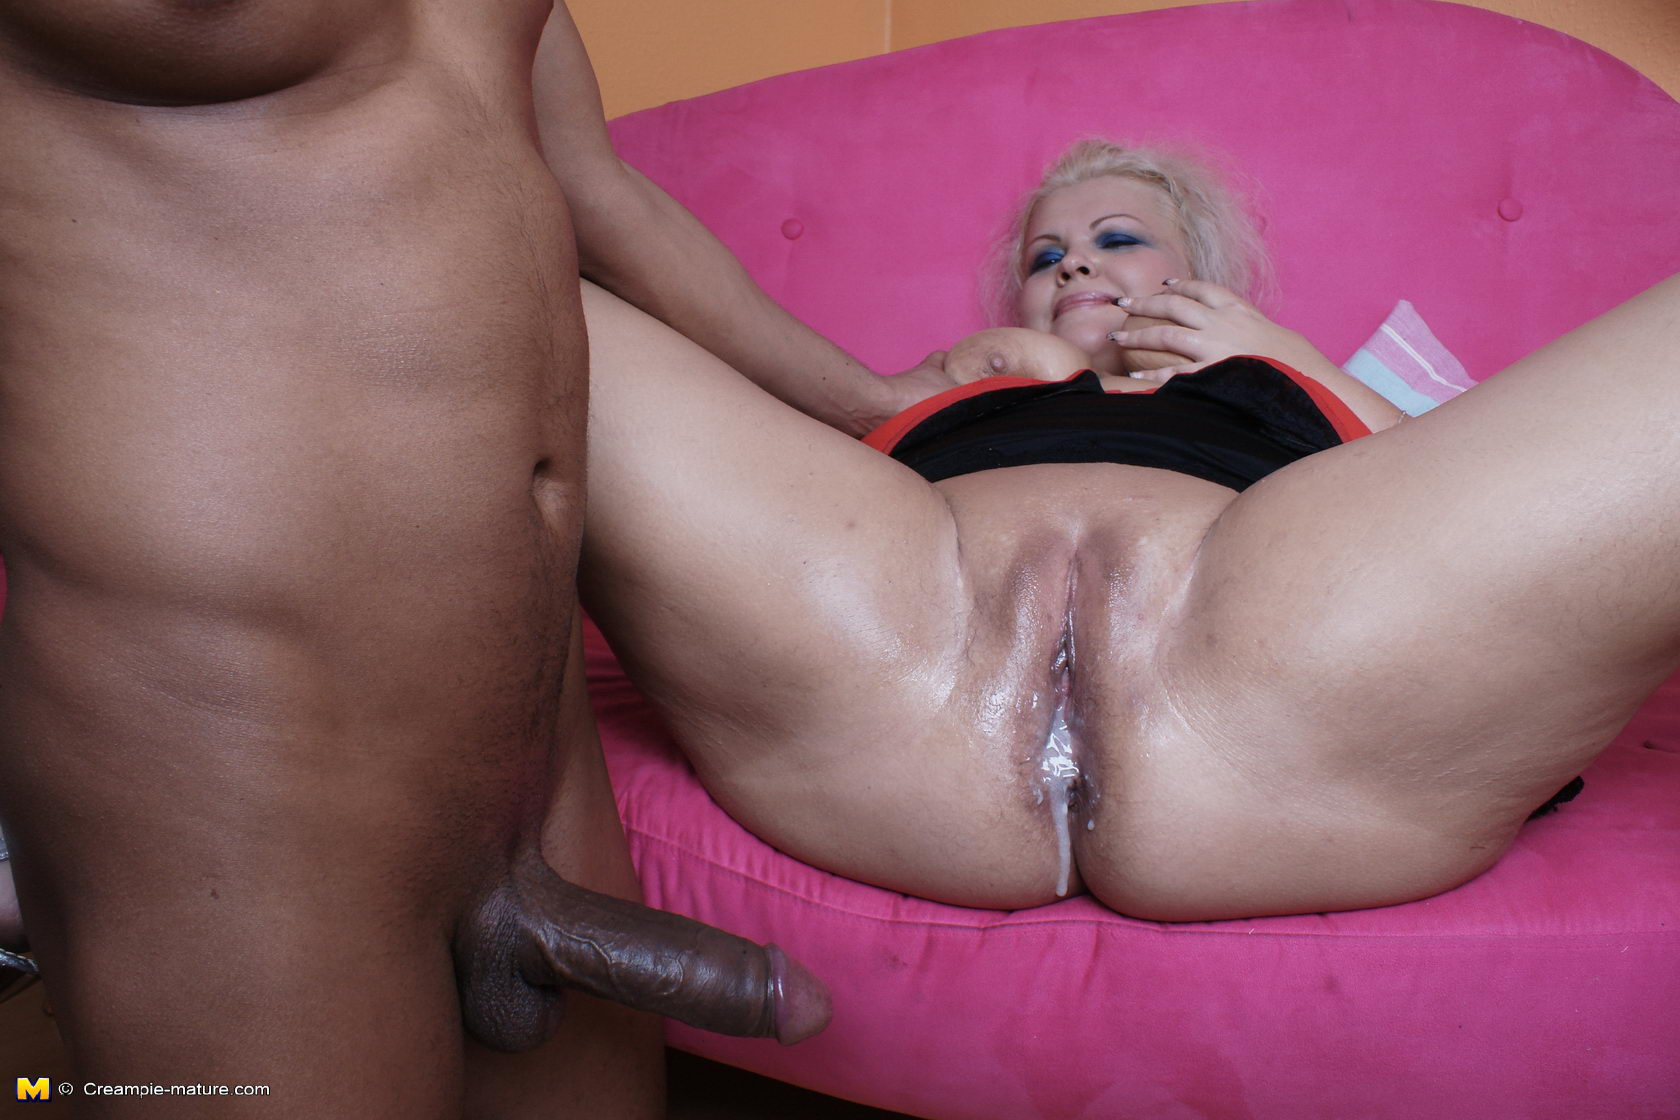 Wanna have Booty Creampie